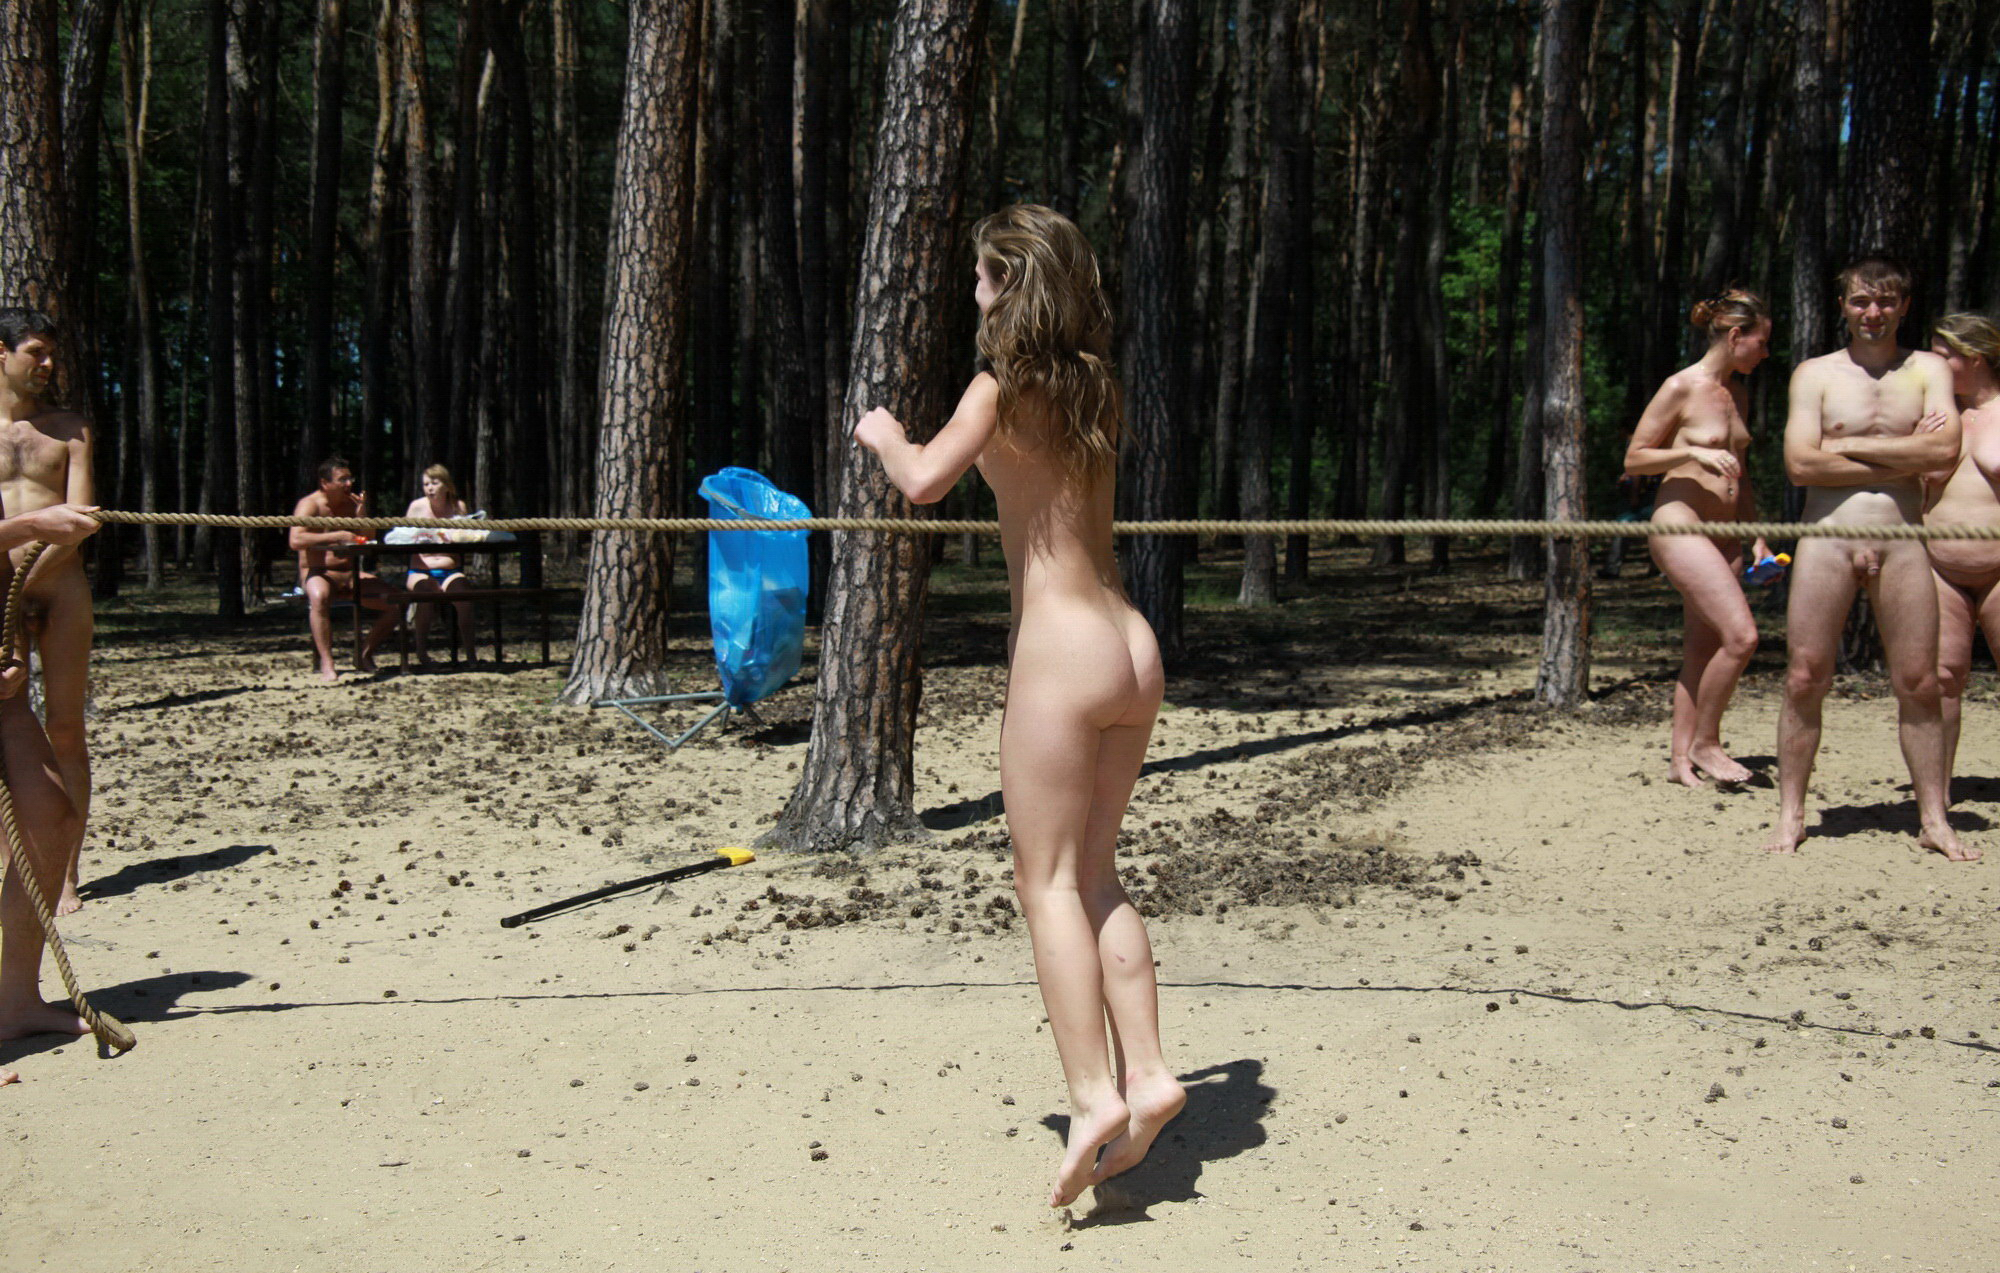 https://voyeurpapa.com/wp-content/uploads/2016/12/Nudists-family-nude-beach-23.jpg